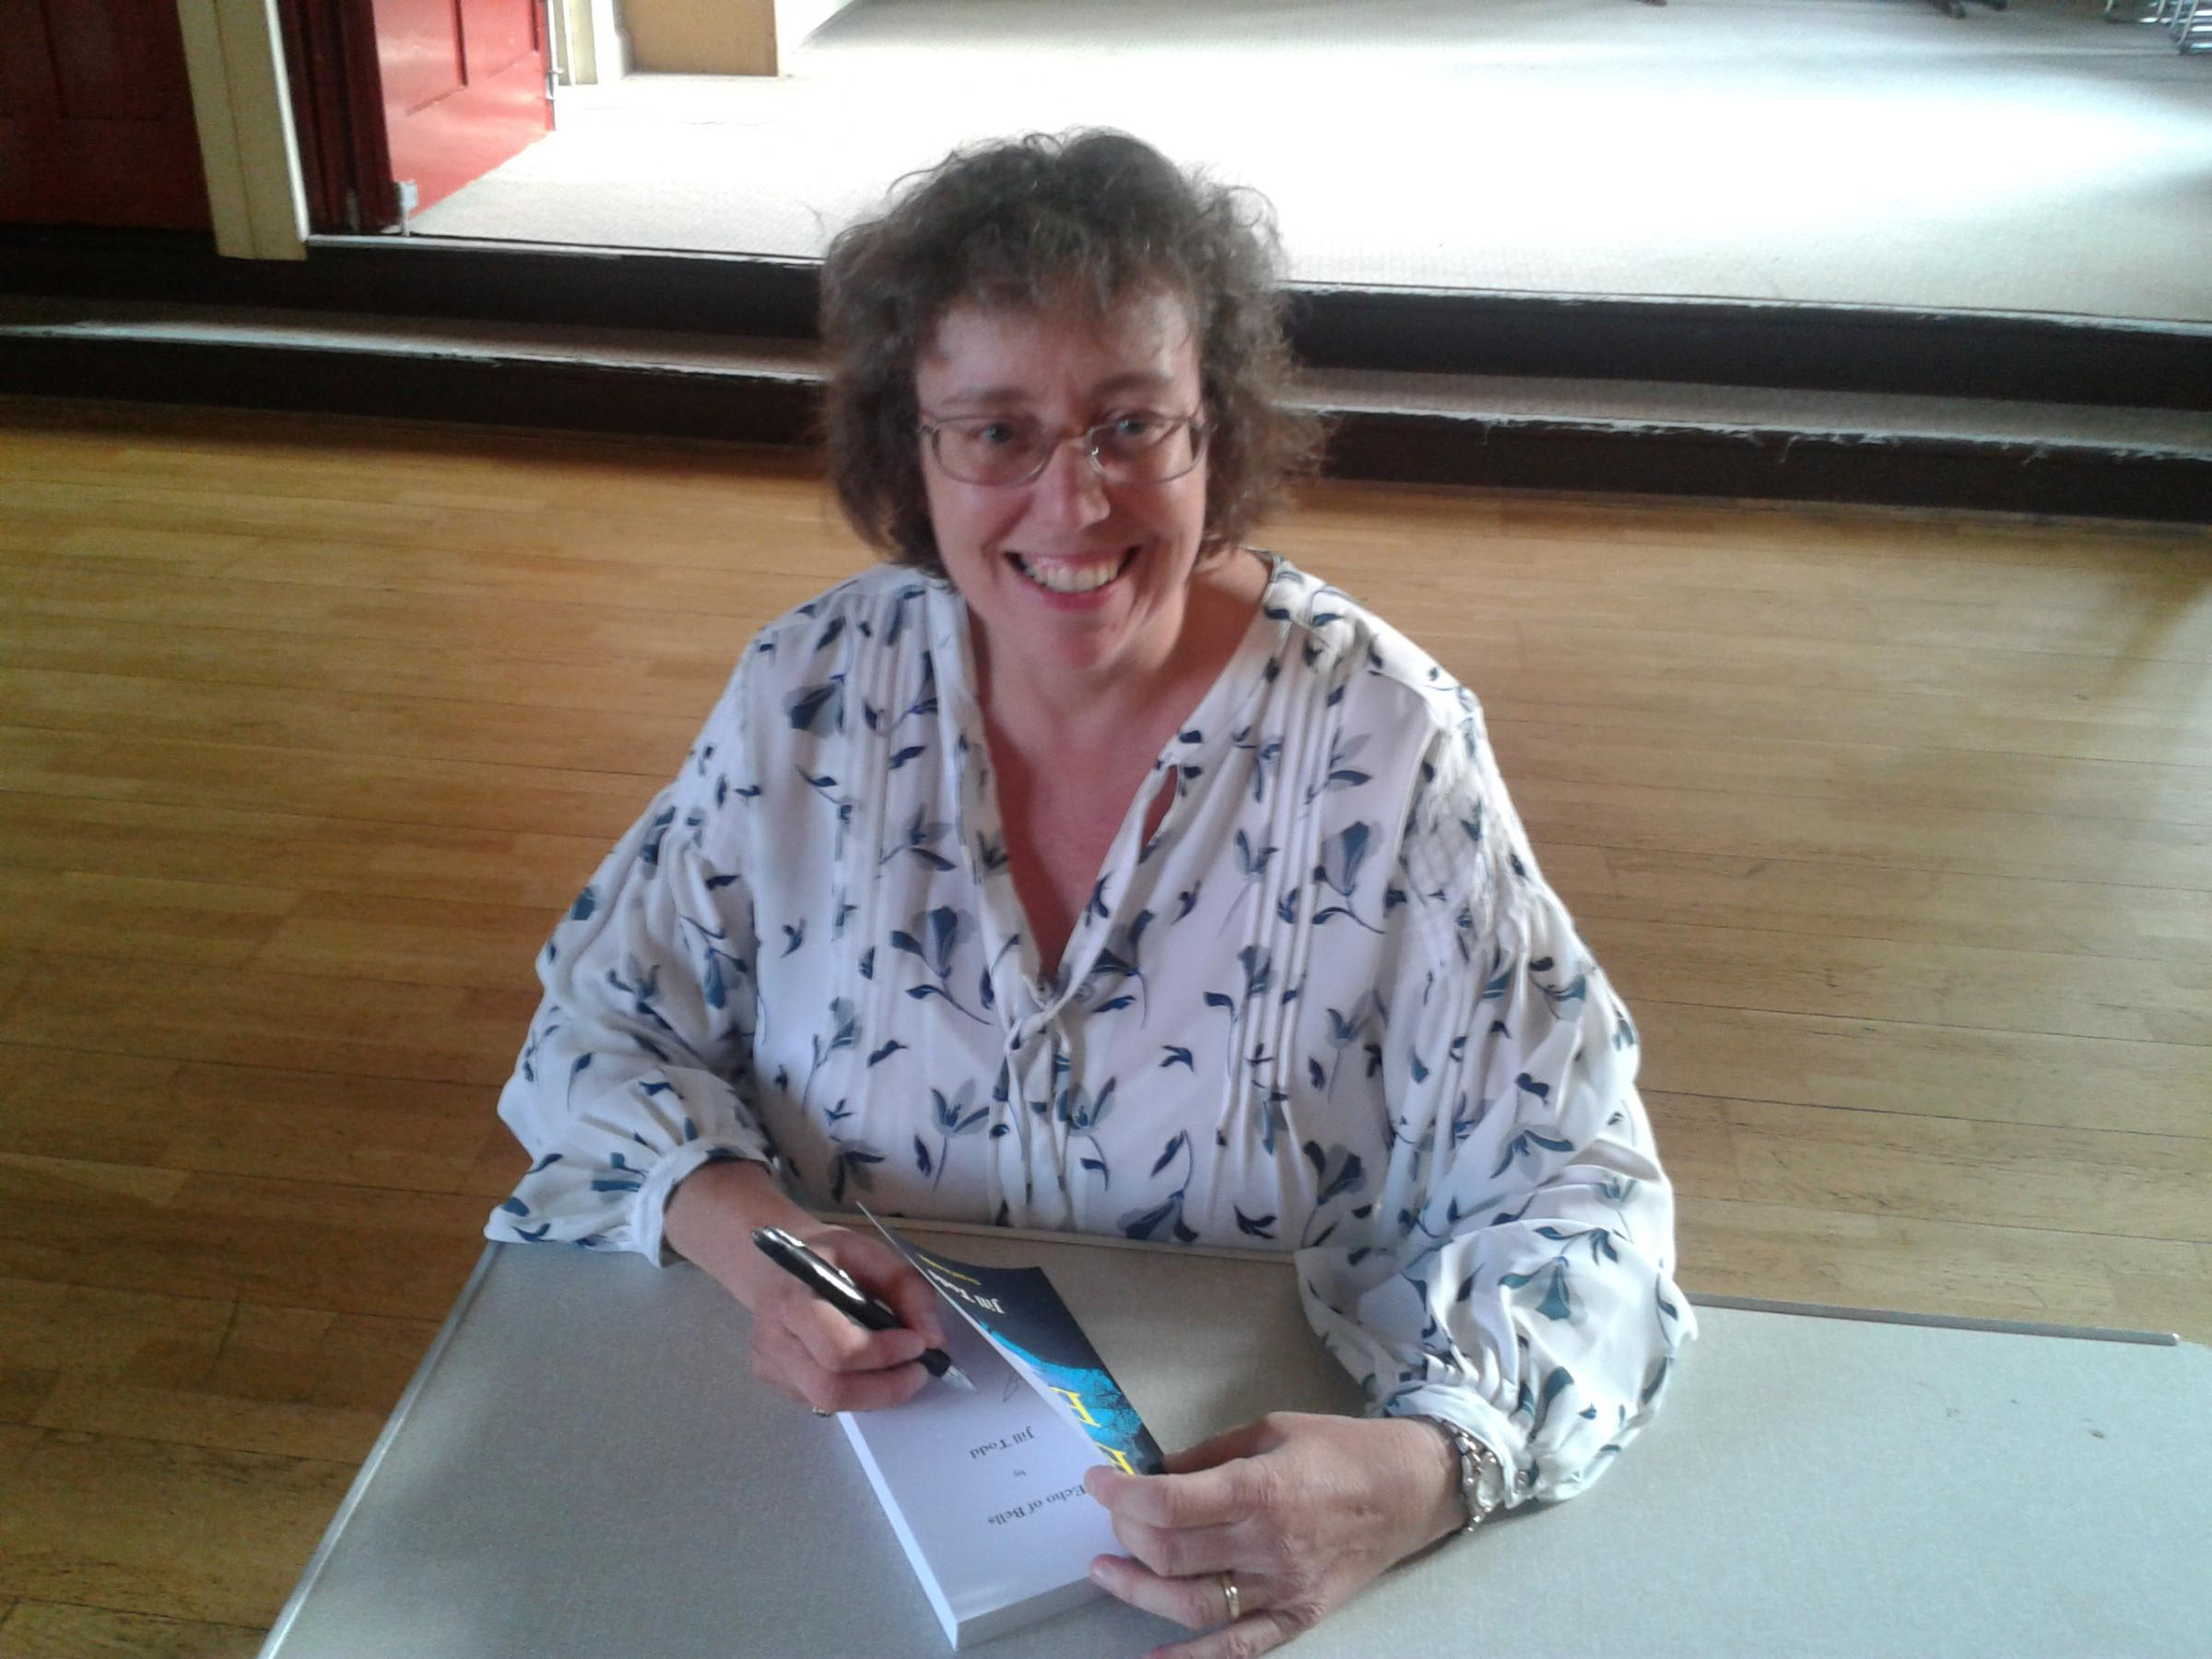 Author signing event at WHSmith in Great Malvern